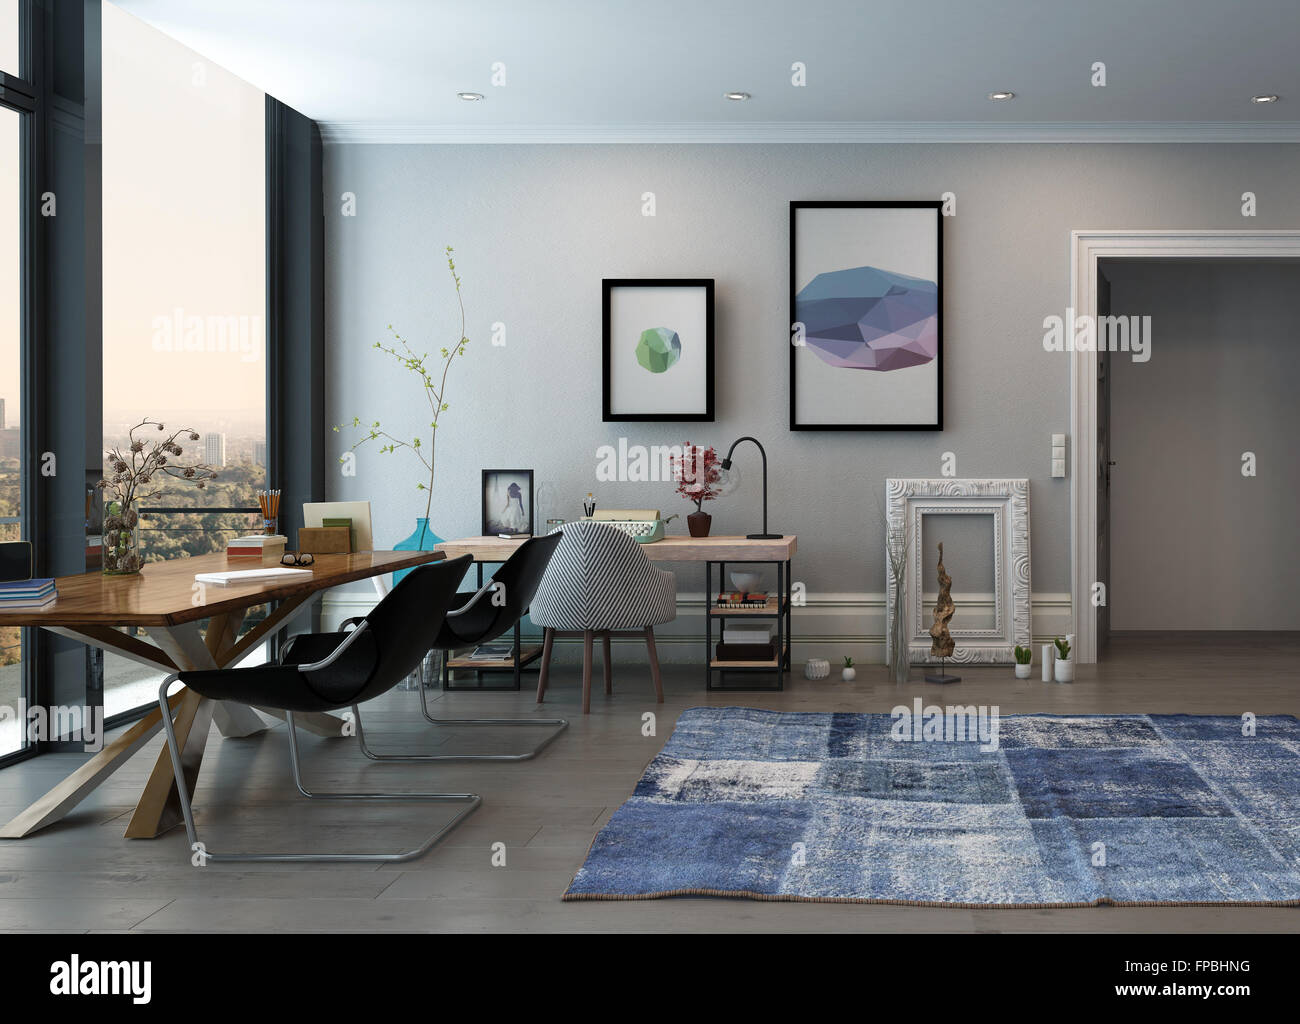 open space home office. Open Concept Home Office Space With Eclectic Furnishings In Modern High Rise Apartment Large Window And View Of City